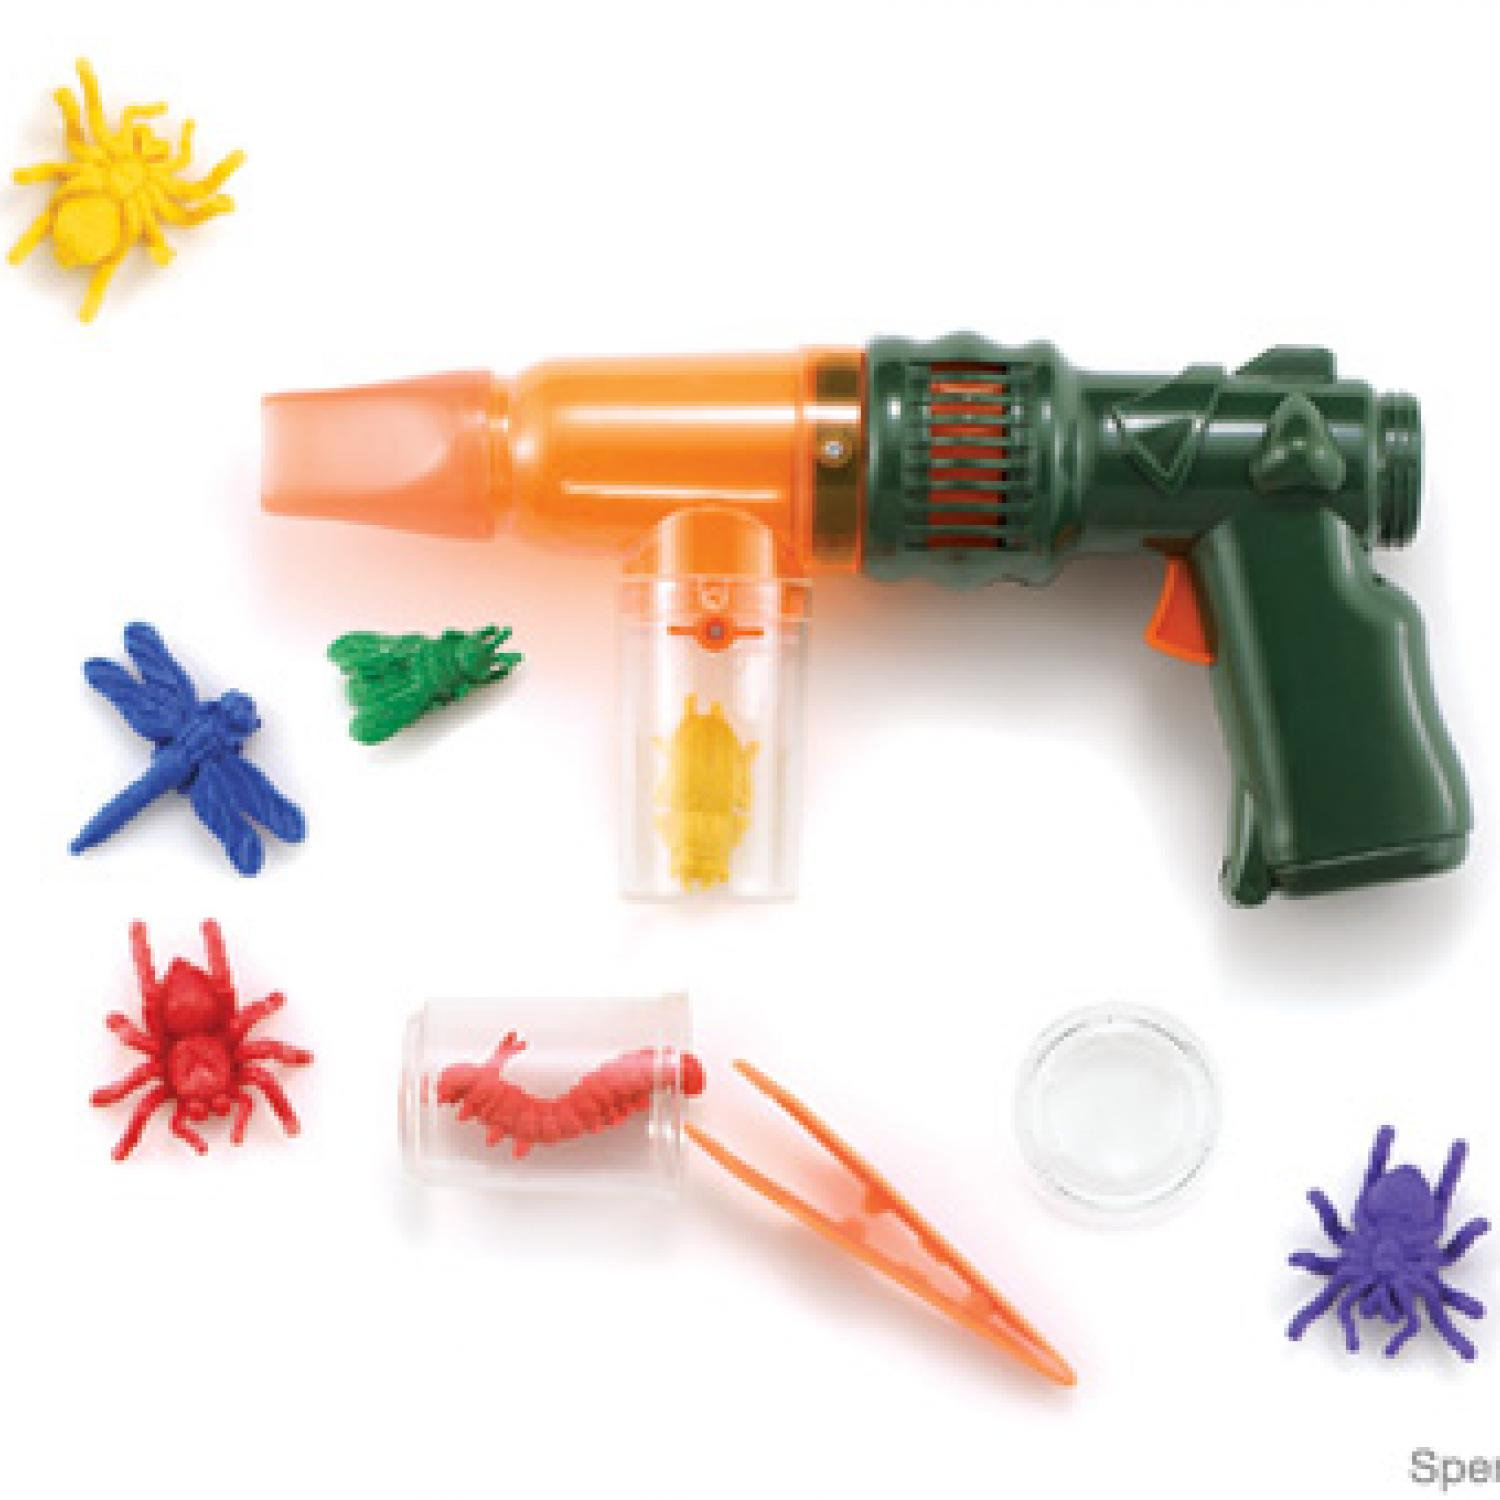 6 Super Science Toys for Kids